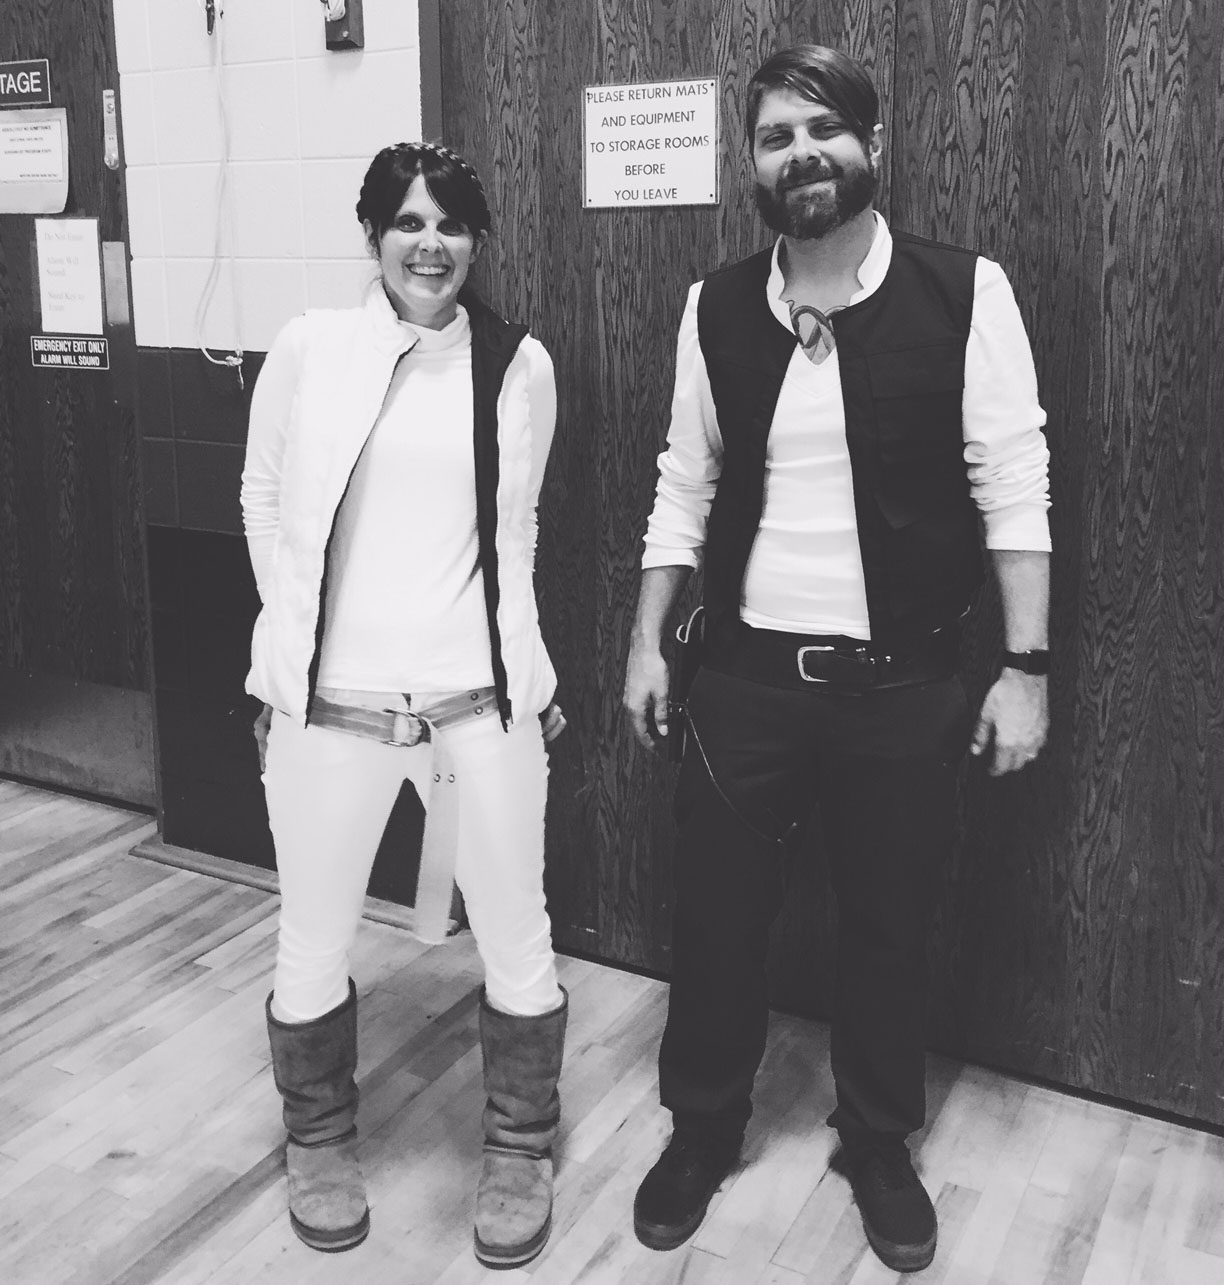 han and leia halloween costumes. Processed with VSCOcam with b2 preset  sc 1 st  make great - WordPress.com & han solo costume diy | make great